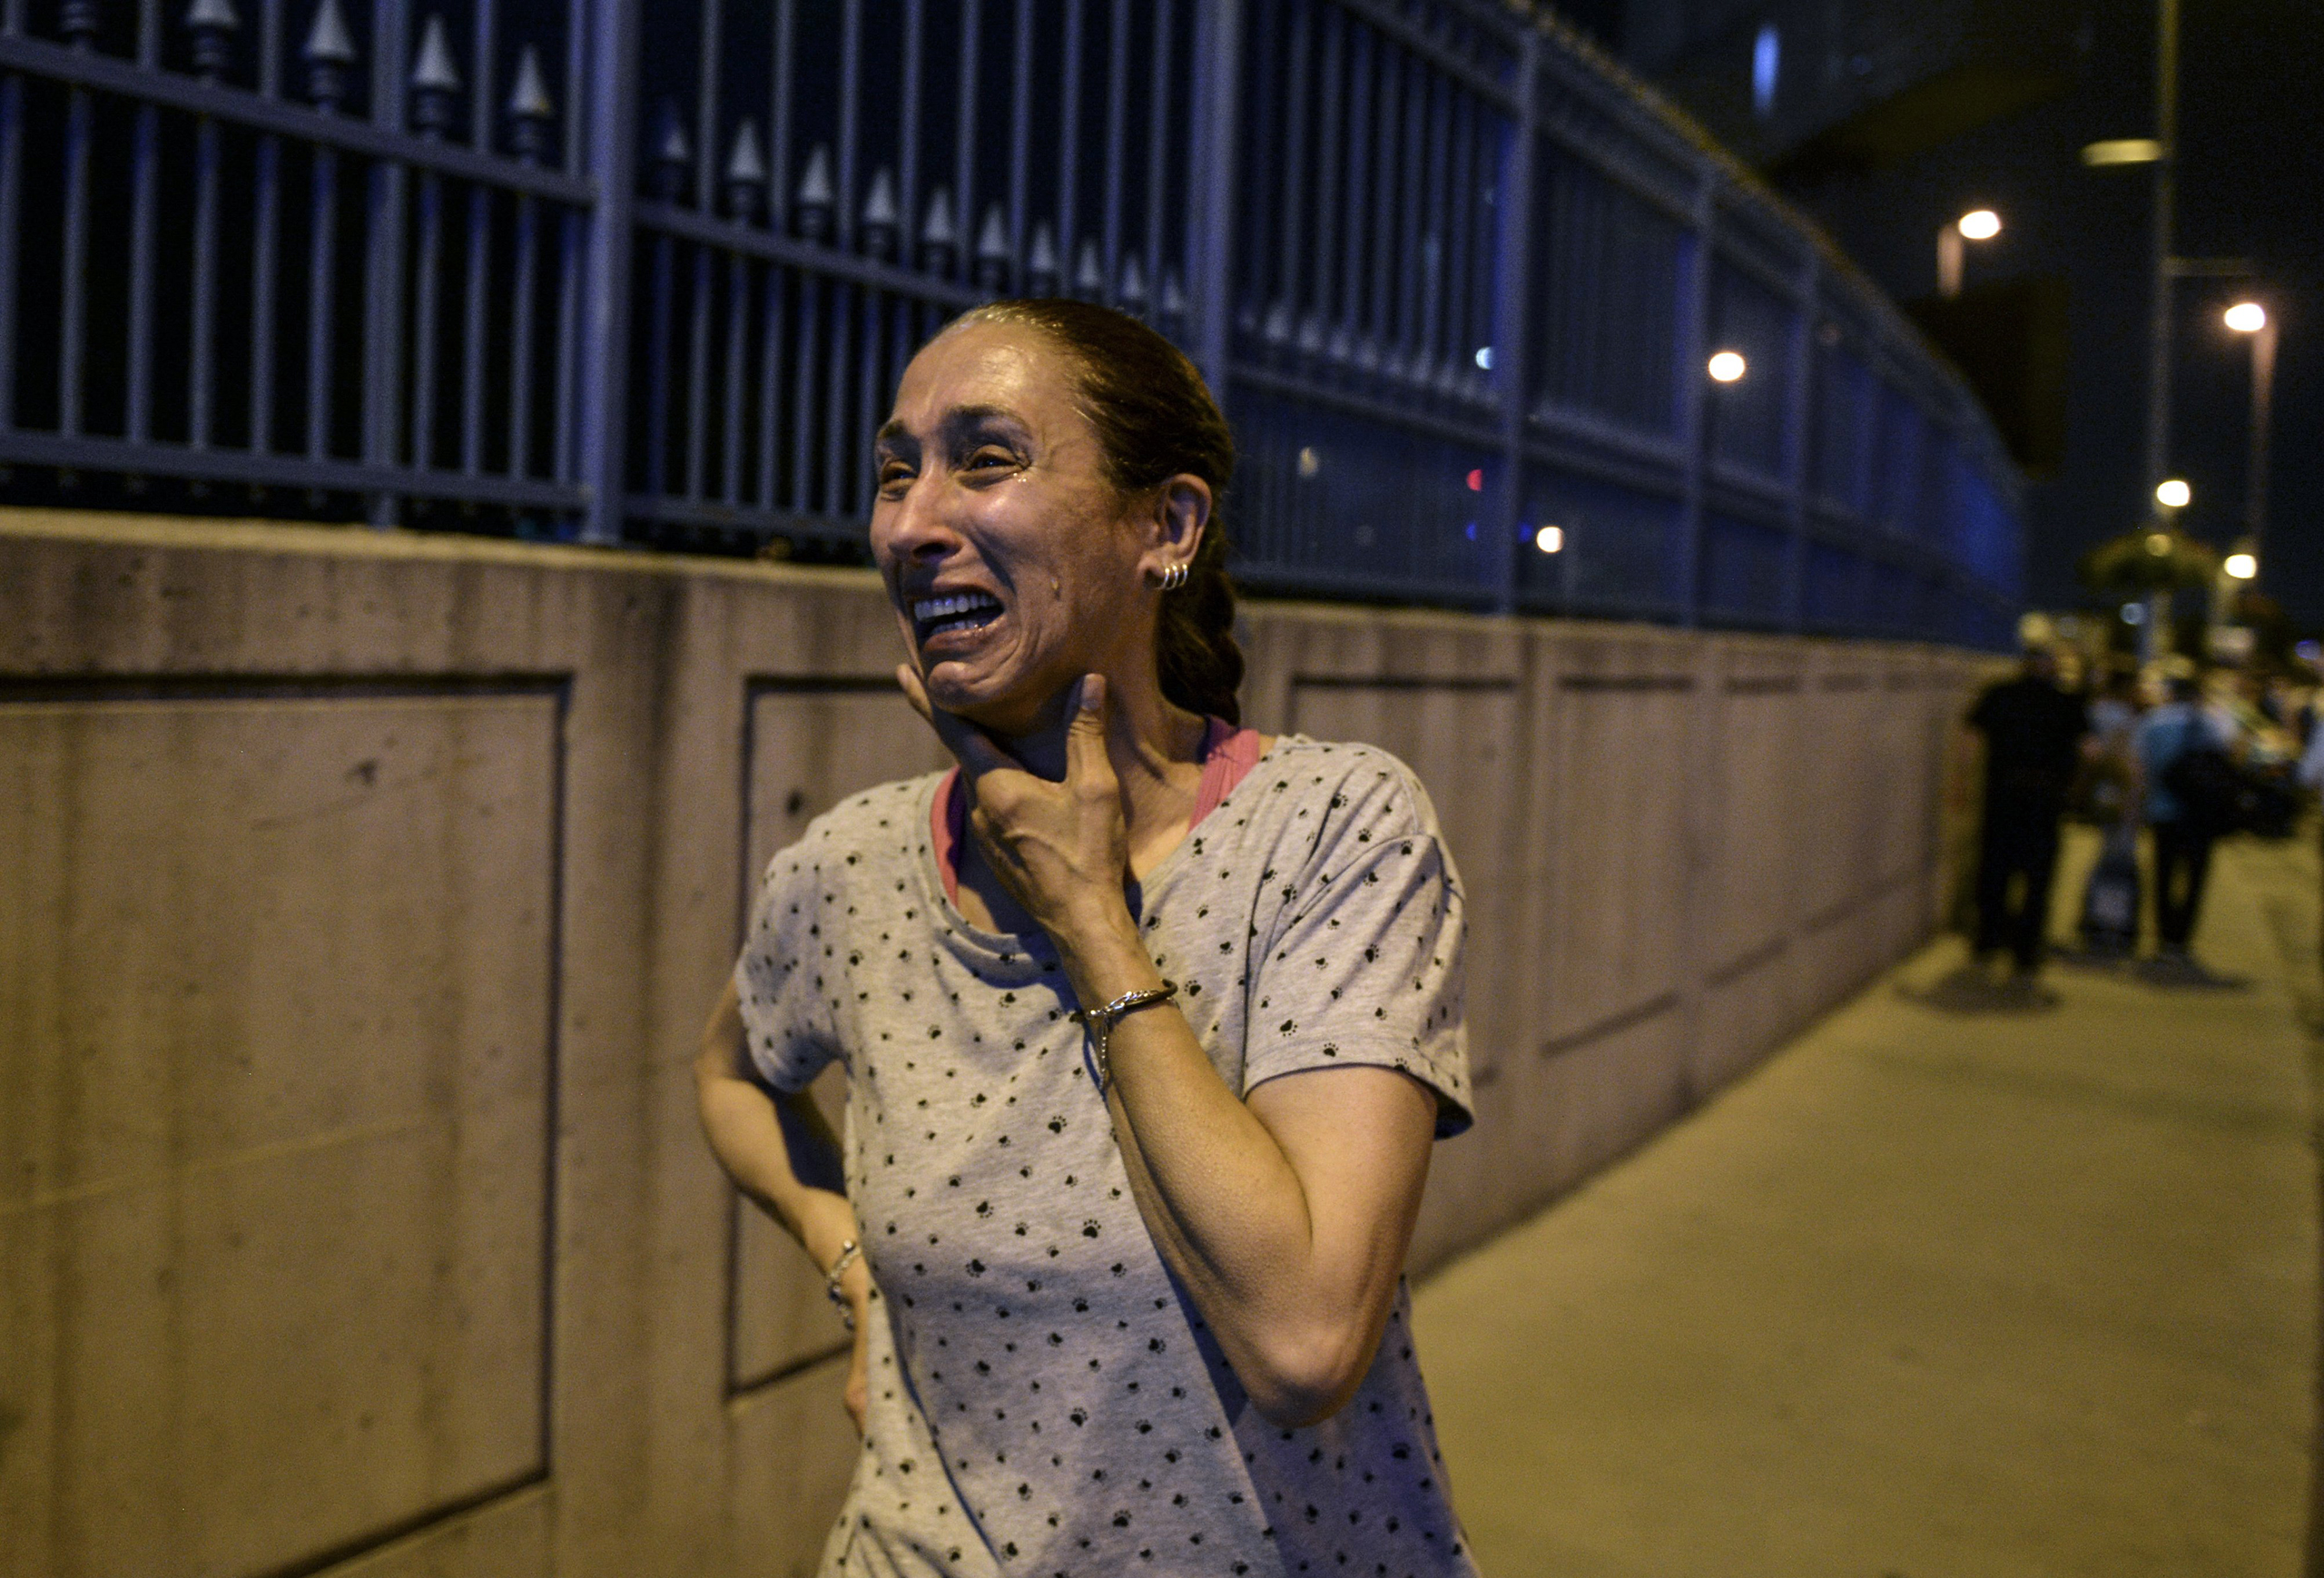 A woman cries outside Istanbul's Ataturk airport following an attack on June 28, 2016.